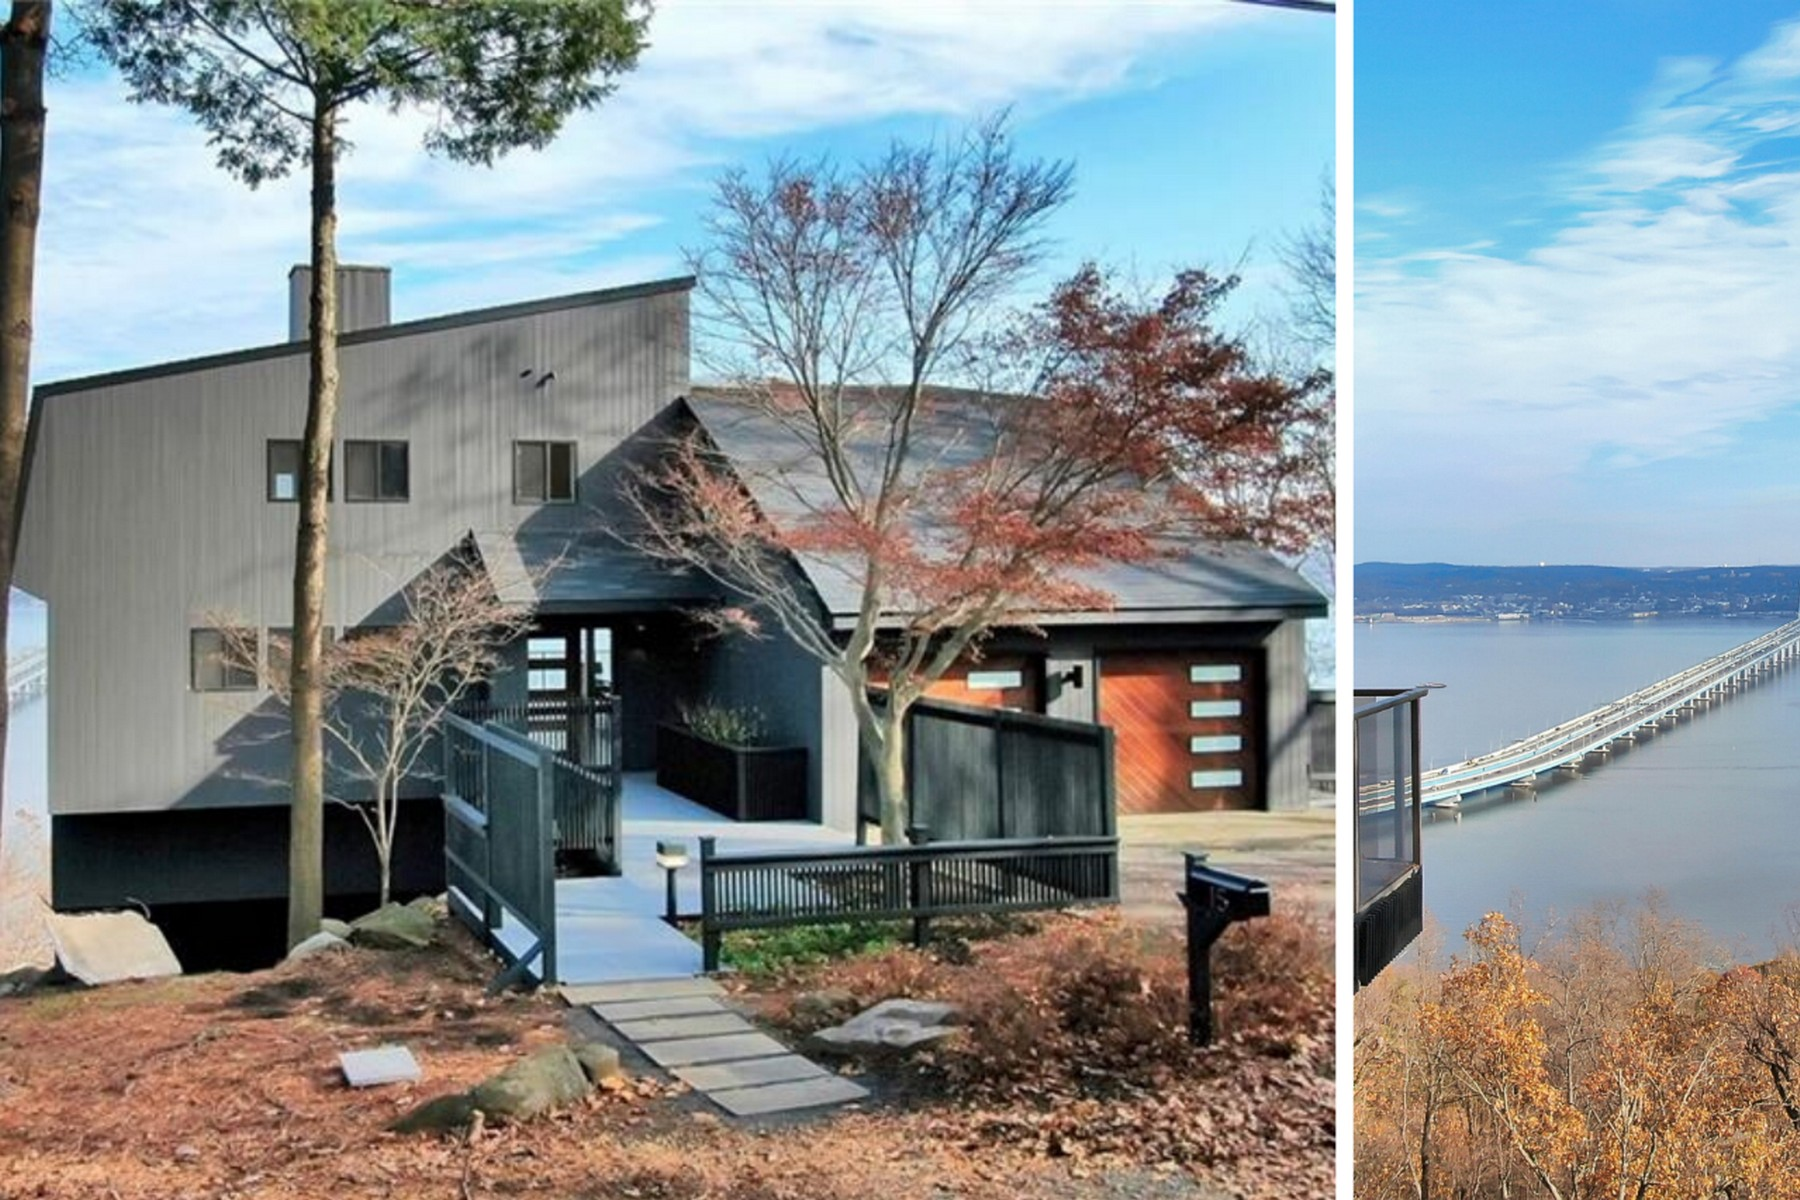 Single Family Homes for Active at Inspirational Living with Hudson River Views 15 Tweed Blvd. Upper Grandview, New York 10960 United States